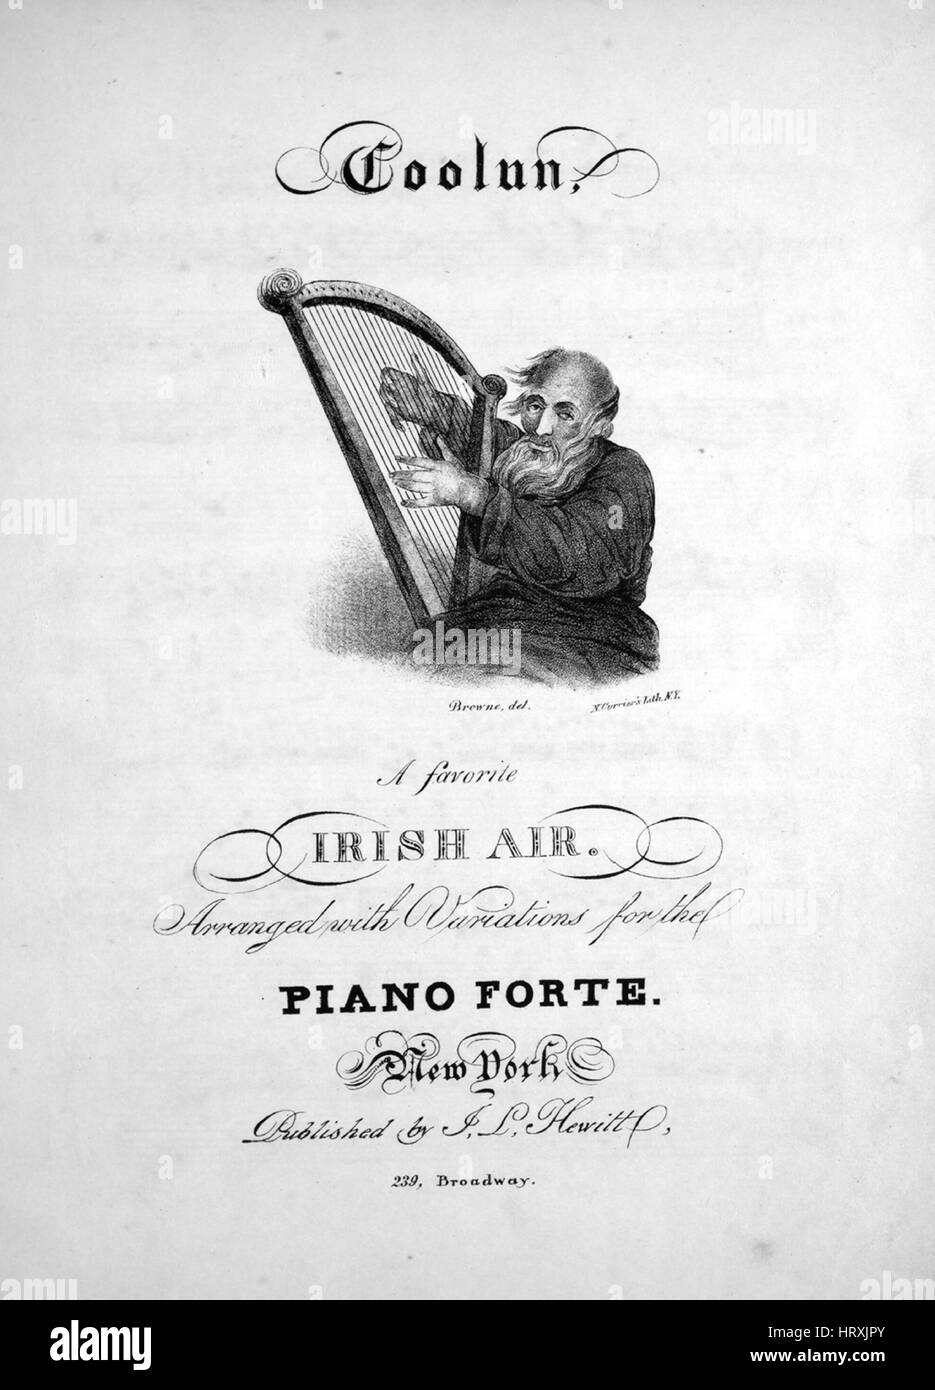 Sheet music cover image of the song 'Coolun A Favorite Irish